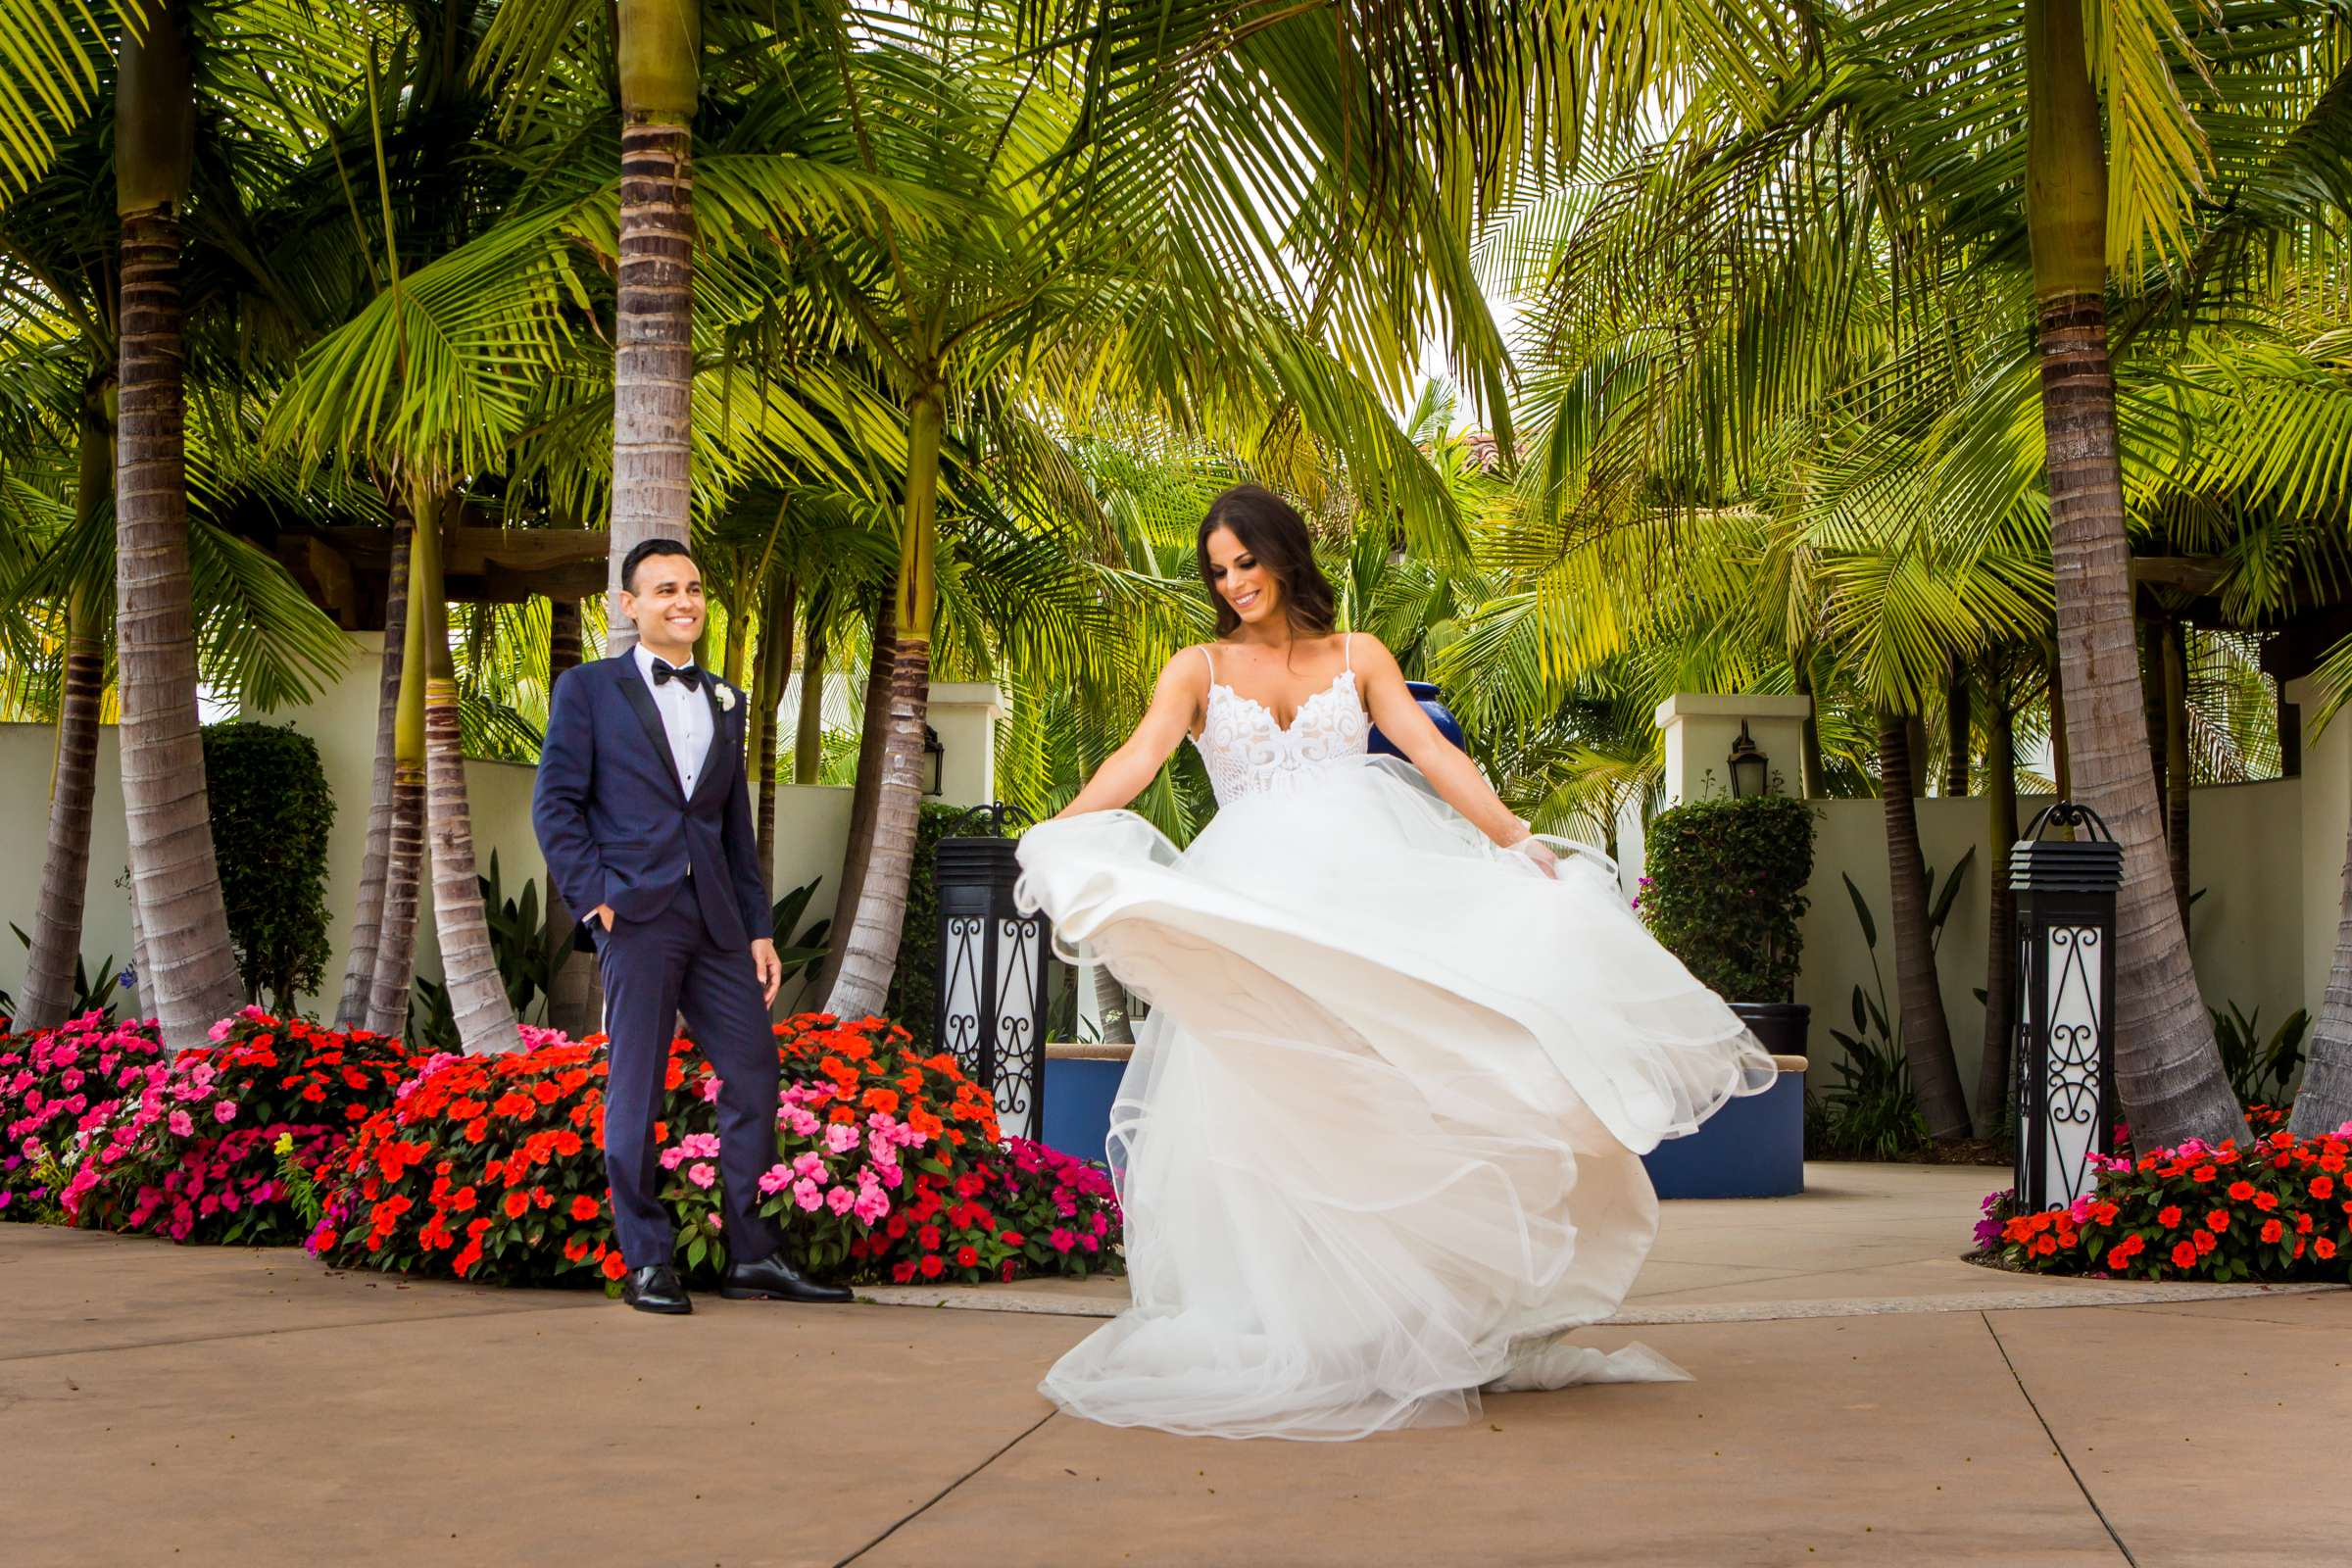 Omni La Costa Resort & Spa Wedding coordinated by Fabulous Two Design, Kristyn and Mani Wedding Photo #1 by True Photography